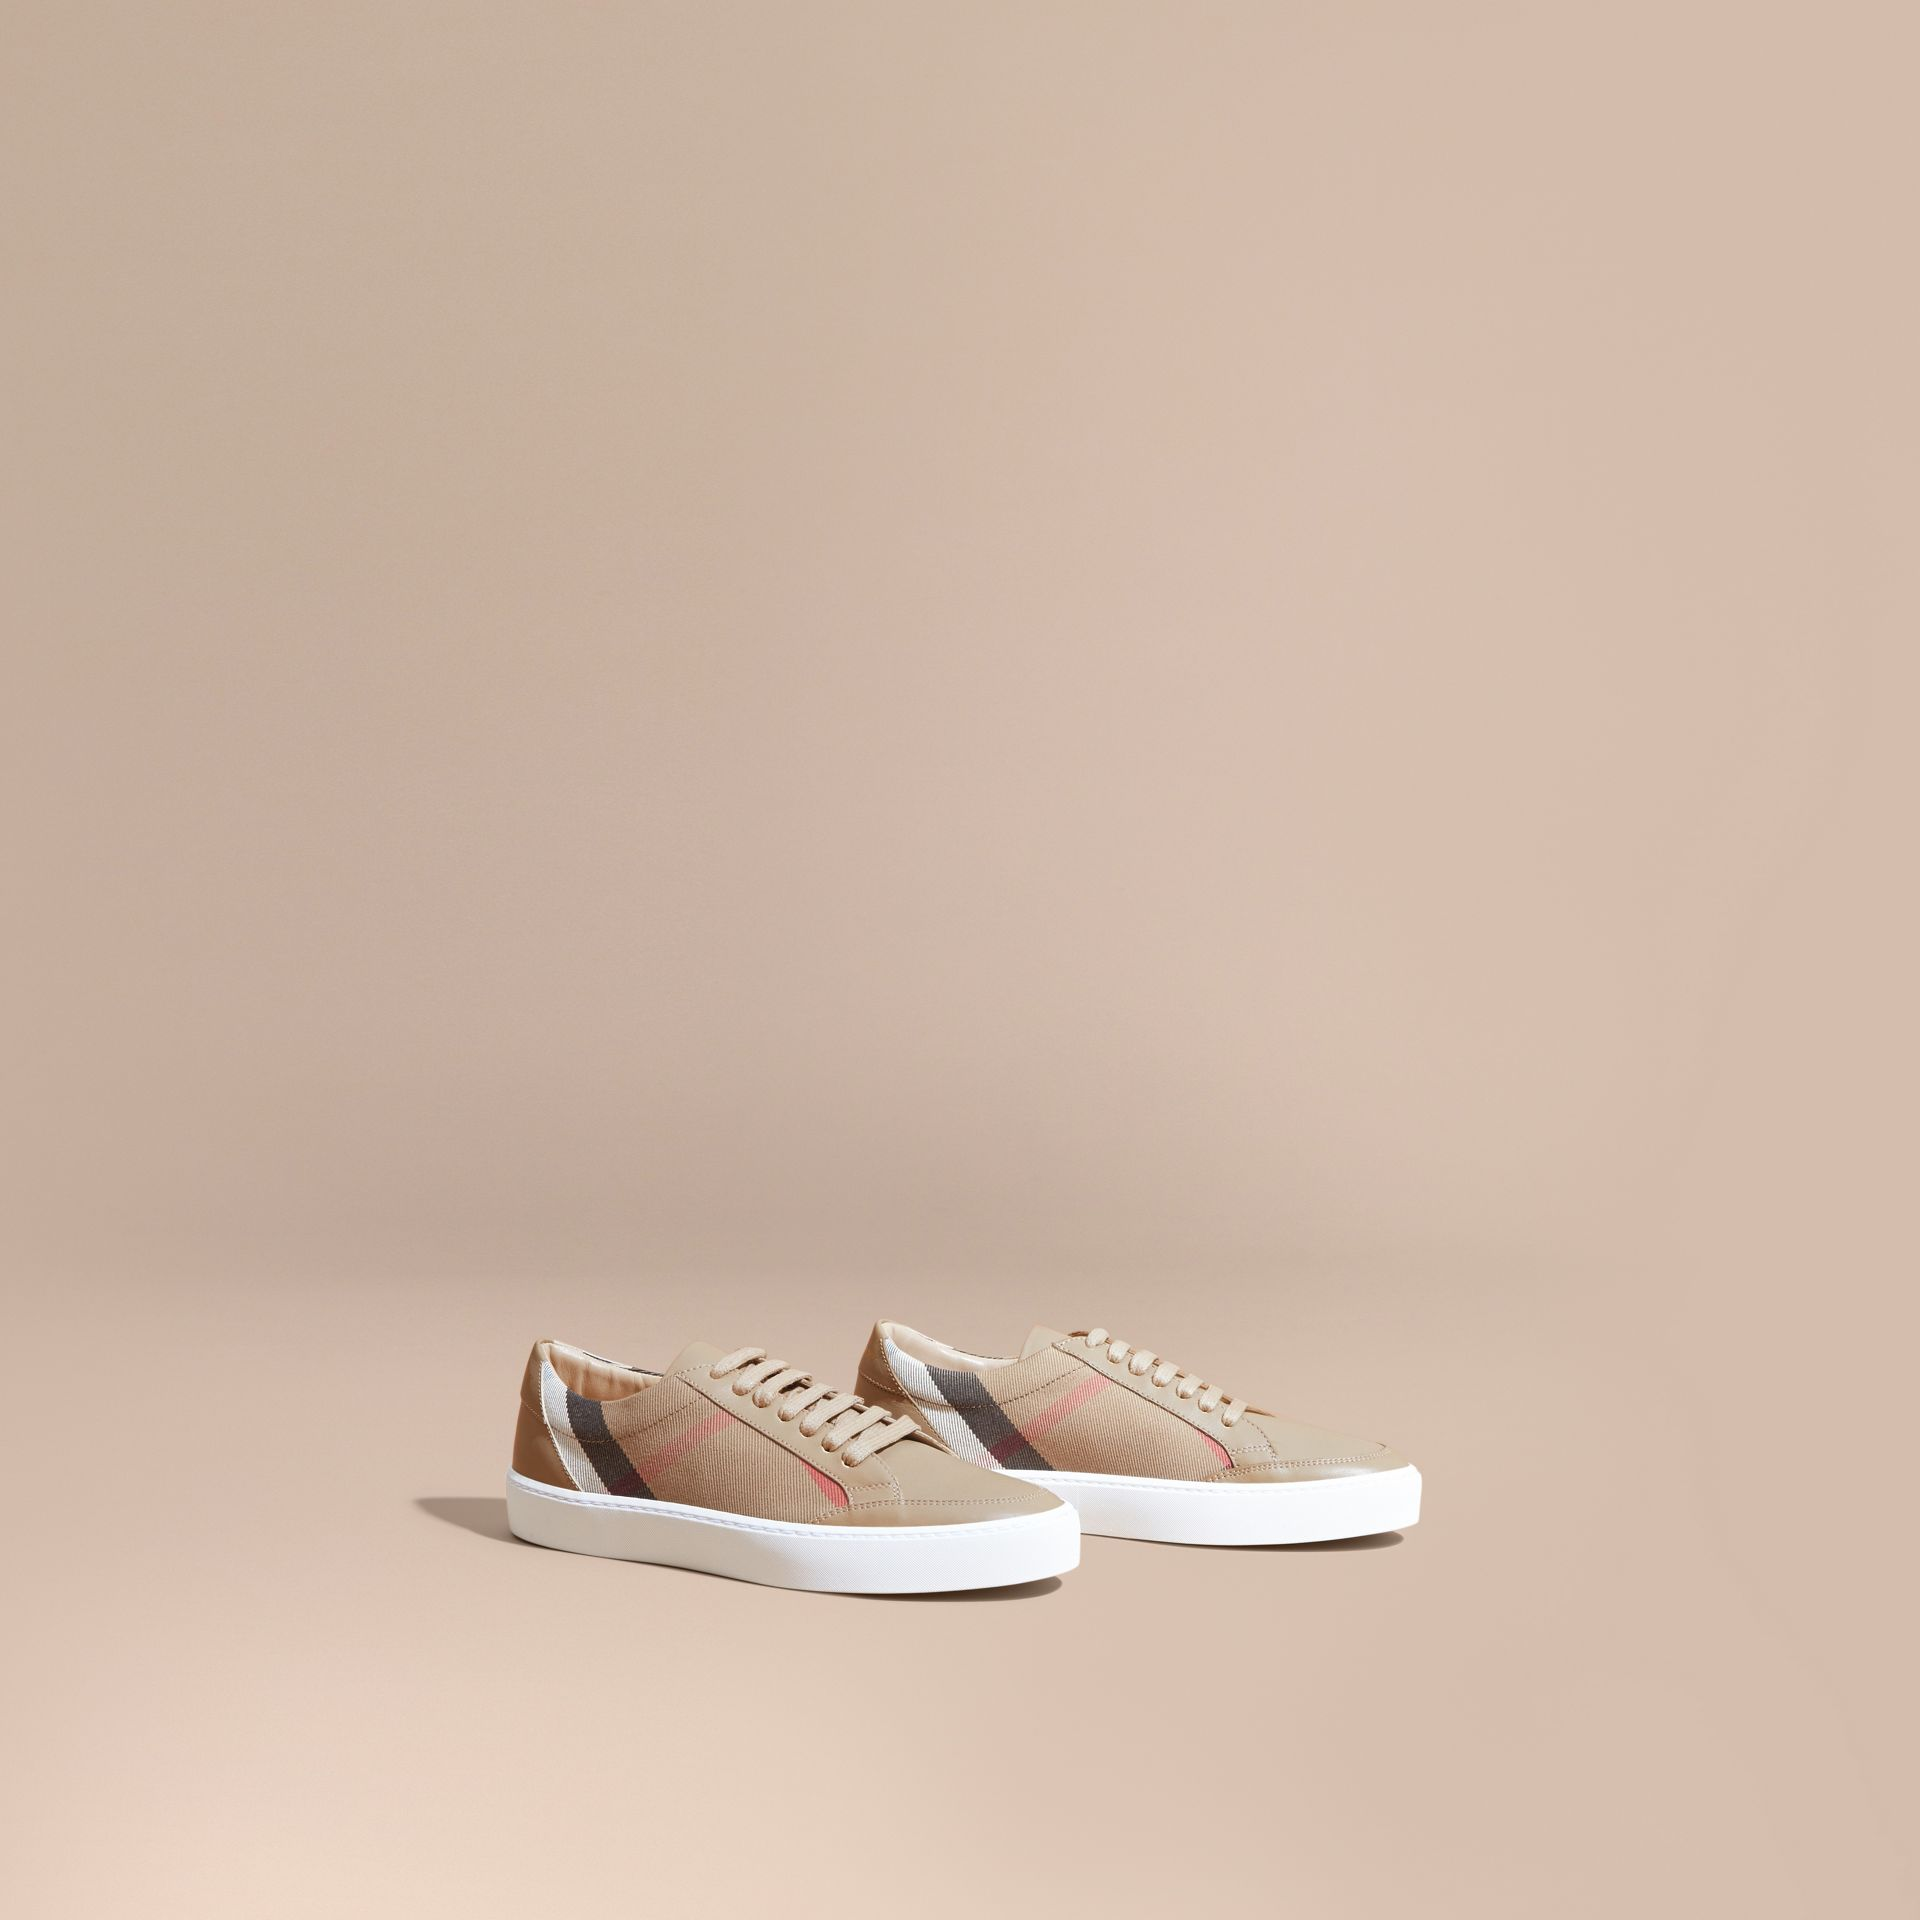 House check/ nude Check Detail Leather Sneakers House Check/ Nude - gallery image 1